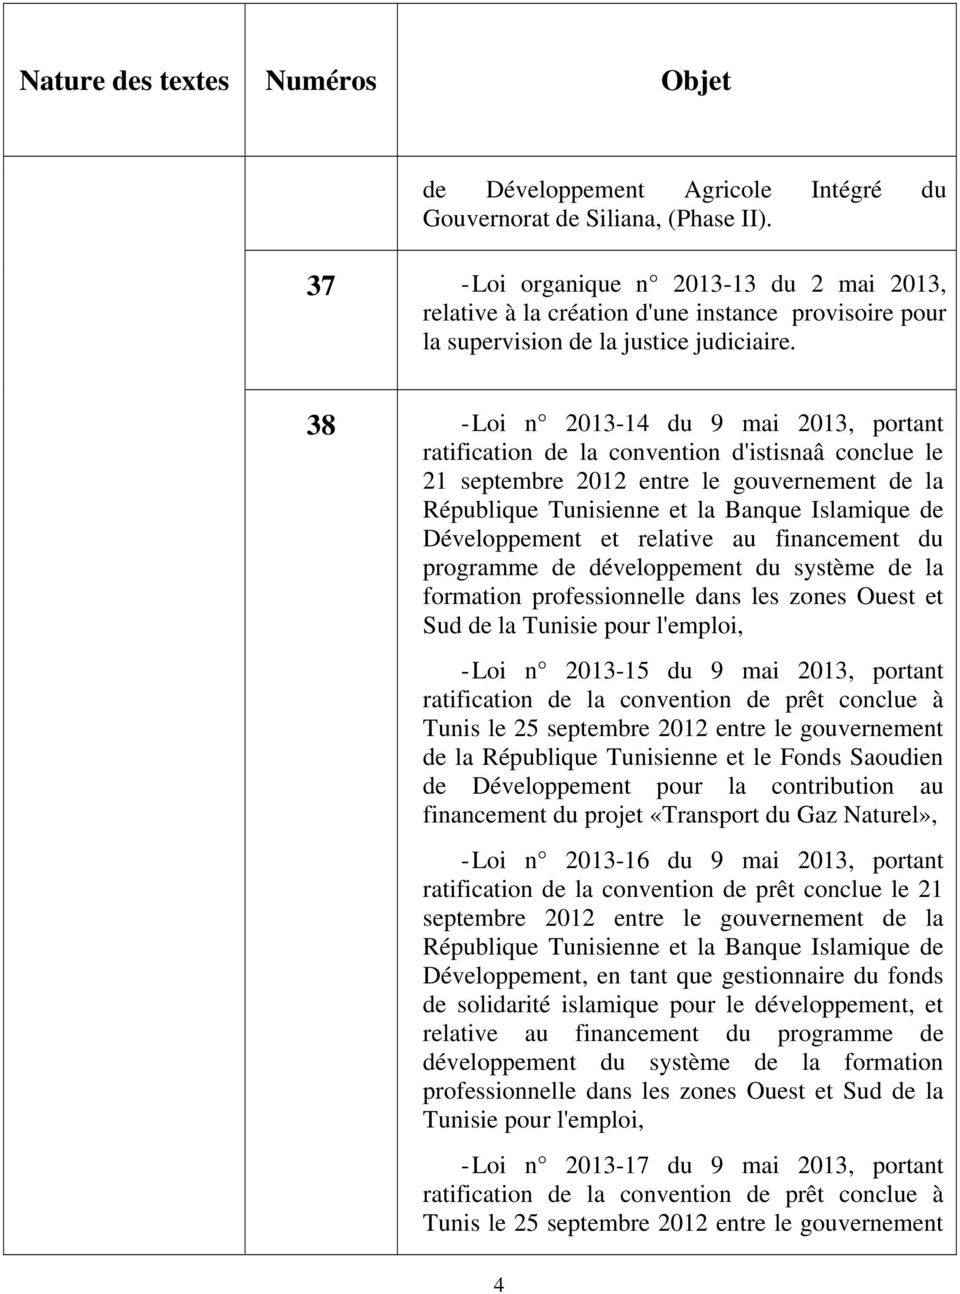 38 - Loi n 2013-14 du 9 mai 2013, portant ratification de la convention d'istisnaâ conclue le 21 septembre 2012 entre le gouvernement de la République Tunisienne et la Banque Islamique de